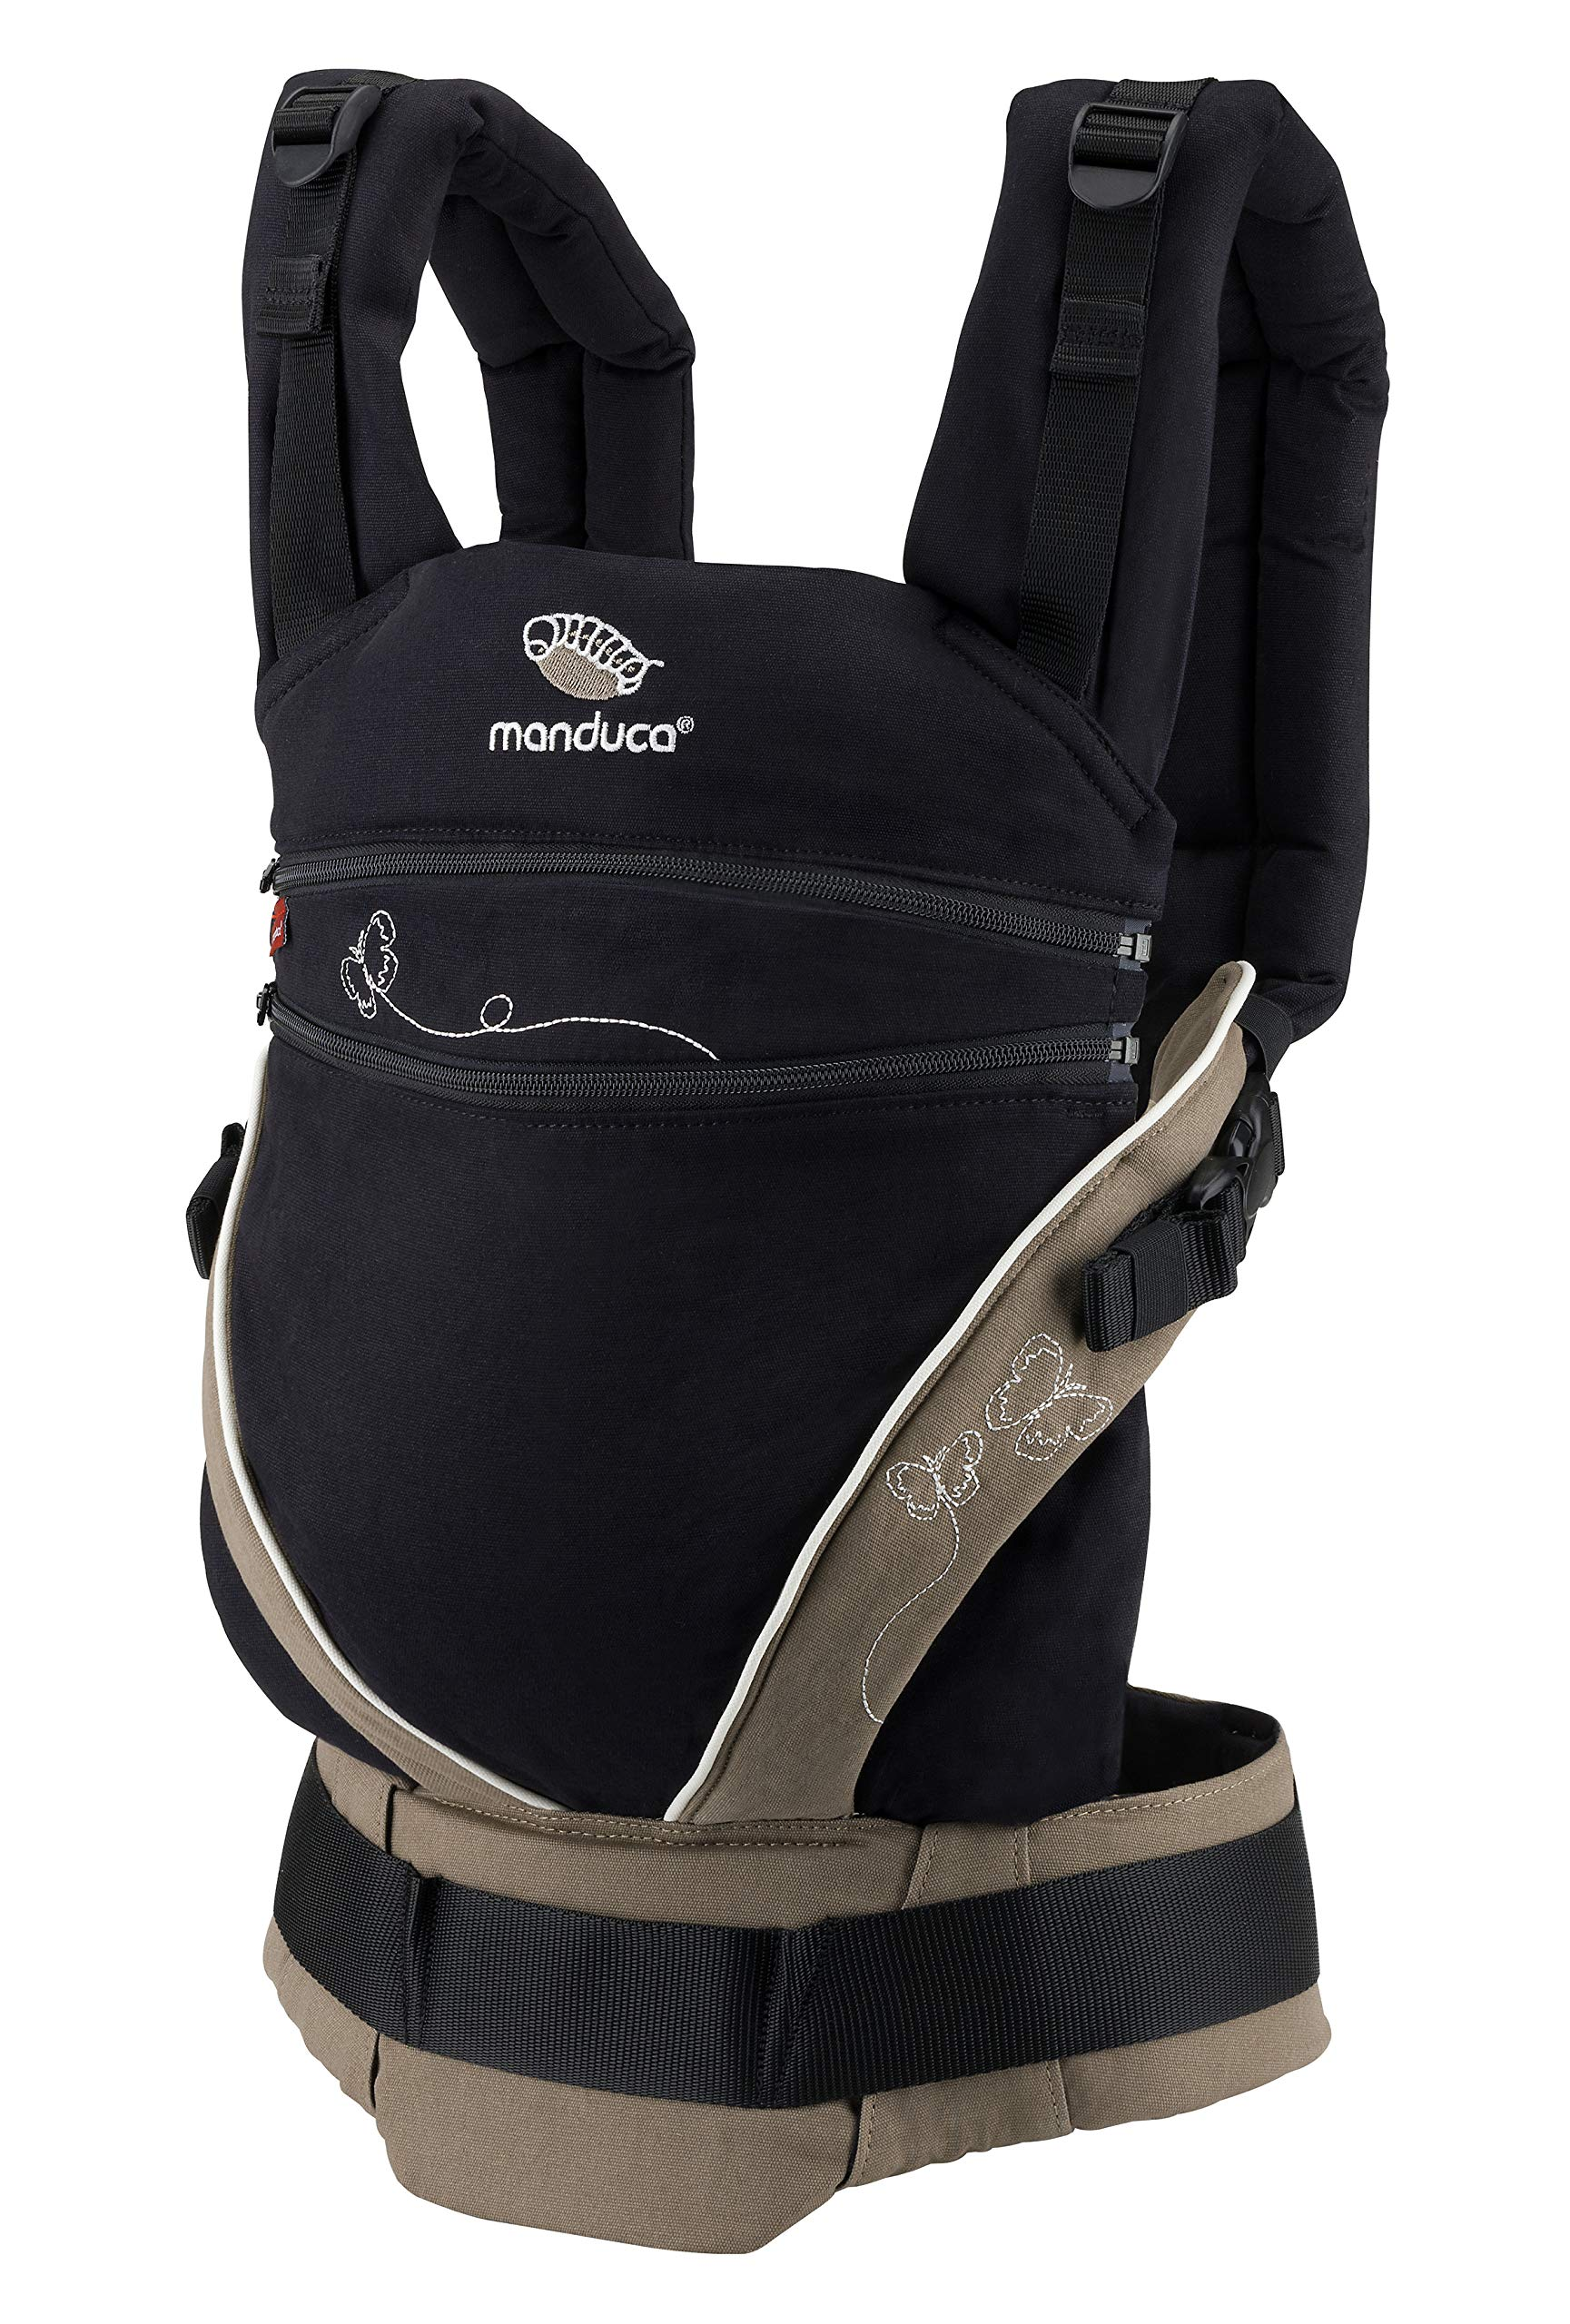 manduca XT Limited Edition > Butterfly Black < Baby Carrier with Adjustable Seat, Front, Hip & Back Carry, Organic Cotton, No Infant Insert Needed, Adapts to Babies from Newborn to Toddler (3.5-20kg) Manduca This baby carrier adapts from newborn to toddler. Infinitely adjustable seat (16-50cm) without buttons, knots, Velcro or cord system. Novel tension arches support baby's spine & hip Three height options thanks to the patented back extension & integrated zip-in. Multifunctional headrest (classic hood or rolled up as neck support). No accessories needed. One Size 3 carry positions: front, hip and back carrier. Not intended for face-out position. Supports the squat-spread position (M-Position) 3